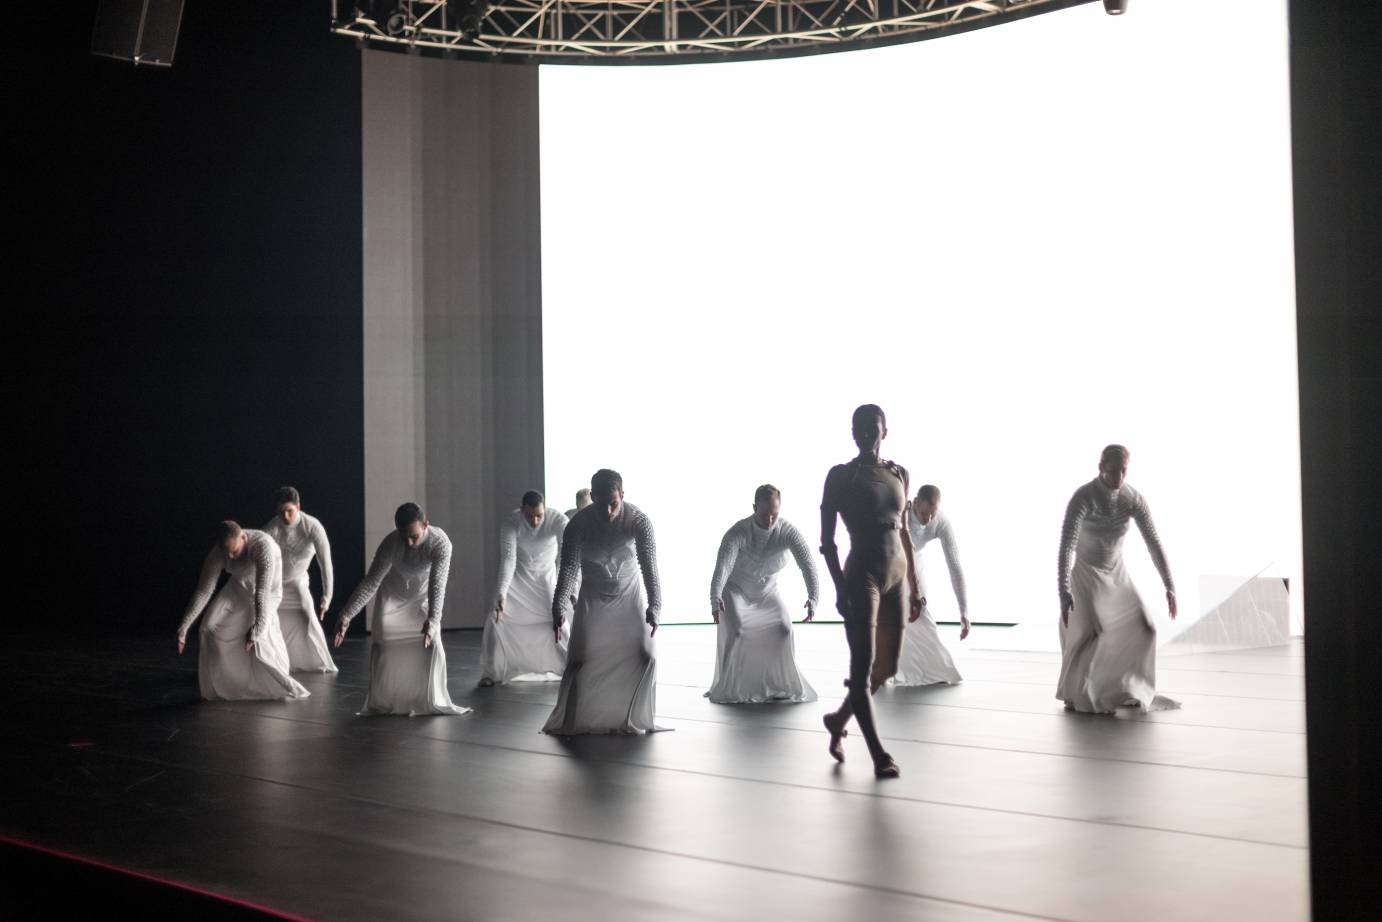 One female dancer in front of eight men in white